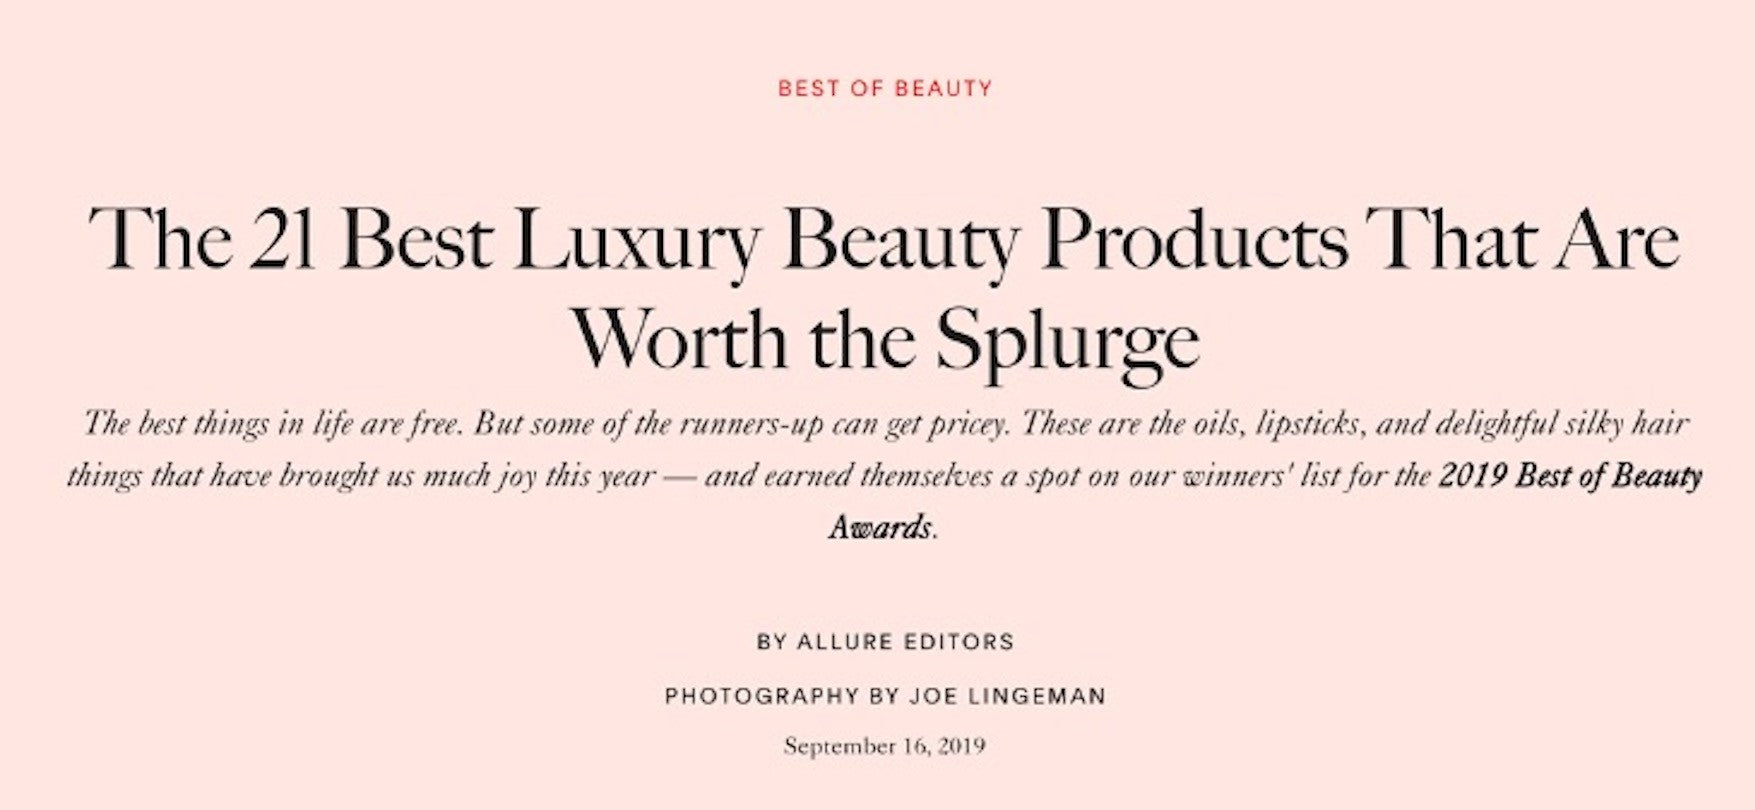 September 2019 - Allure Best of Beauty: Macrene Actives High Performance Neck and Décolletage Treatment Won the Best Splurges